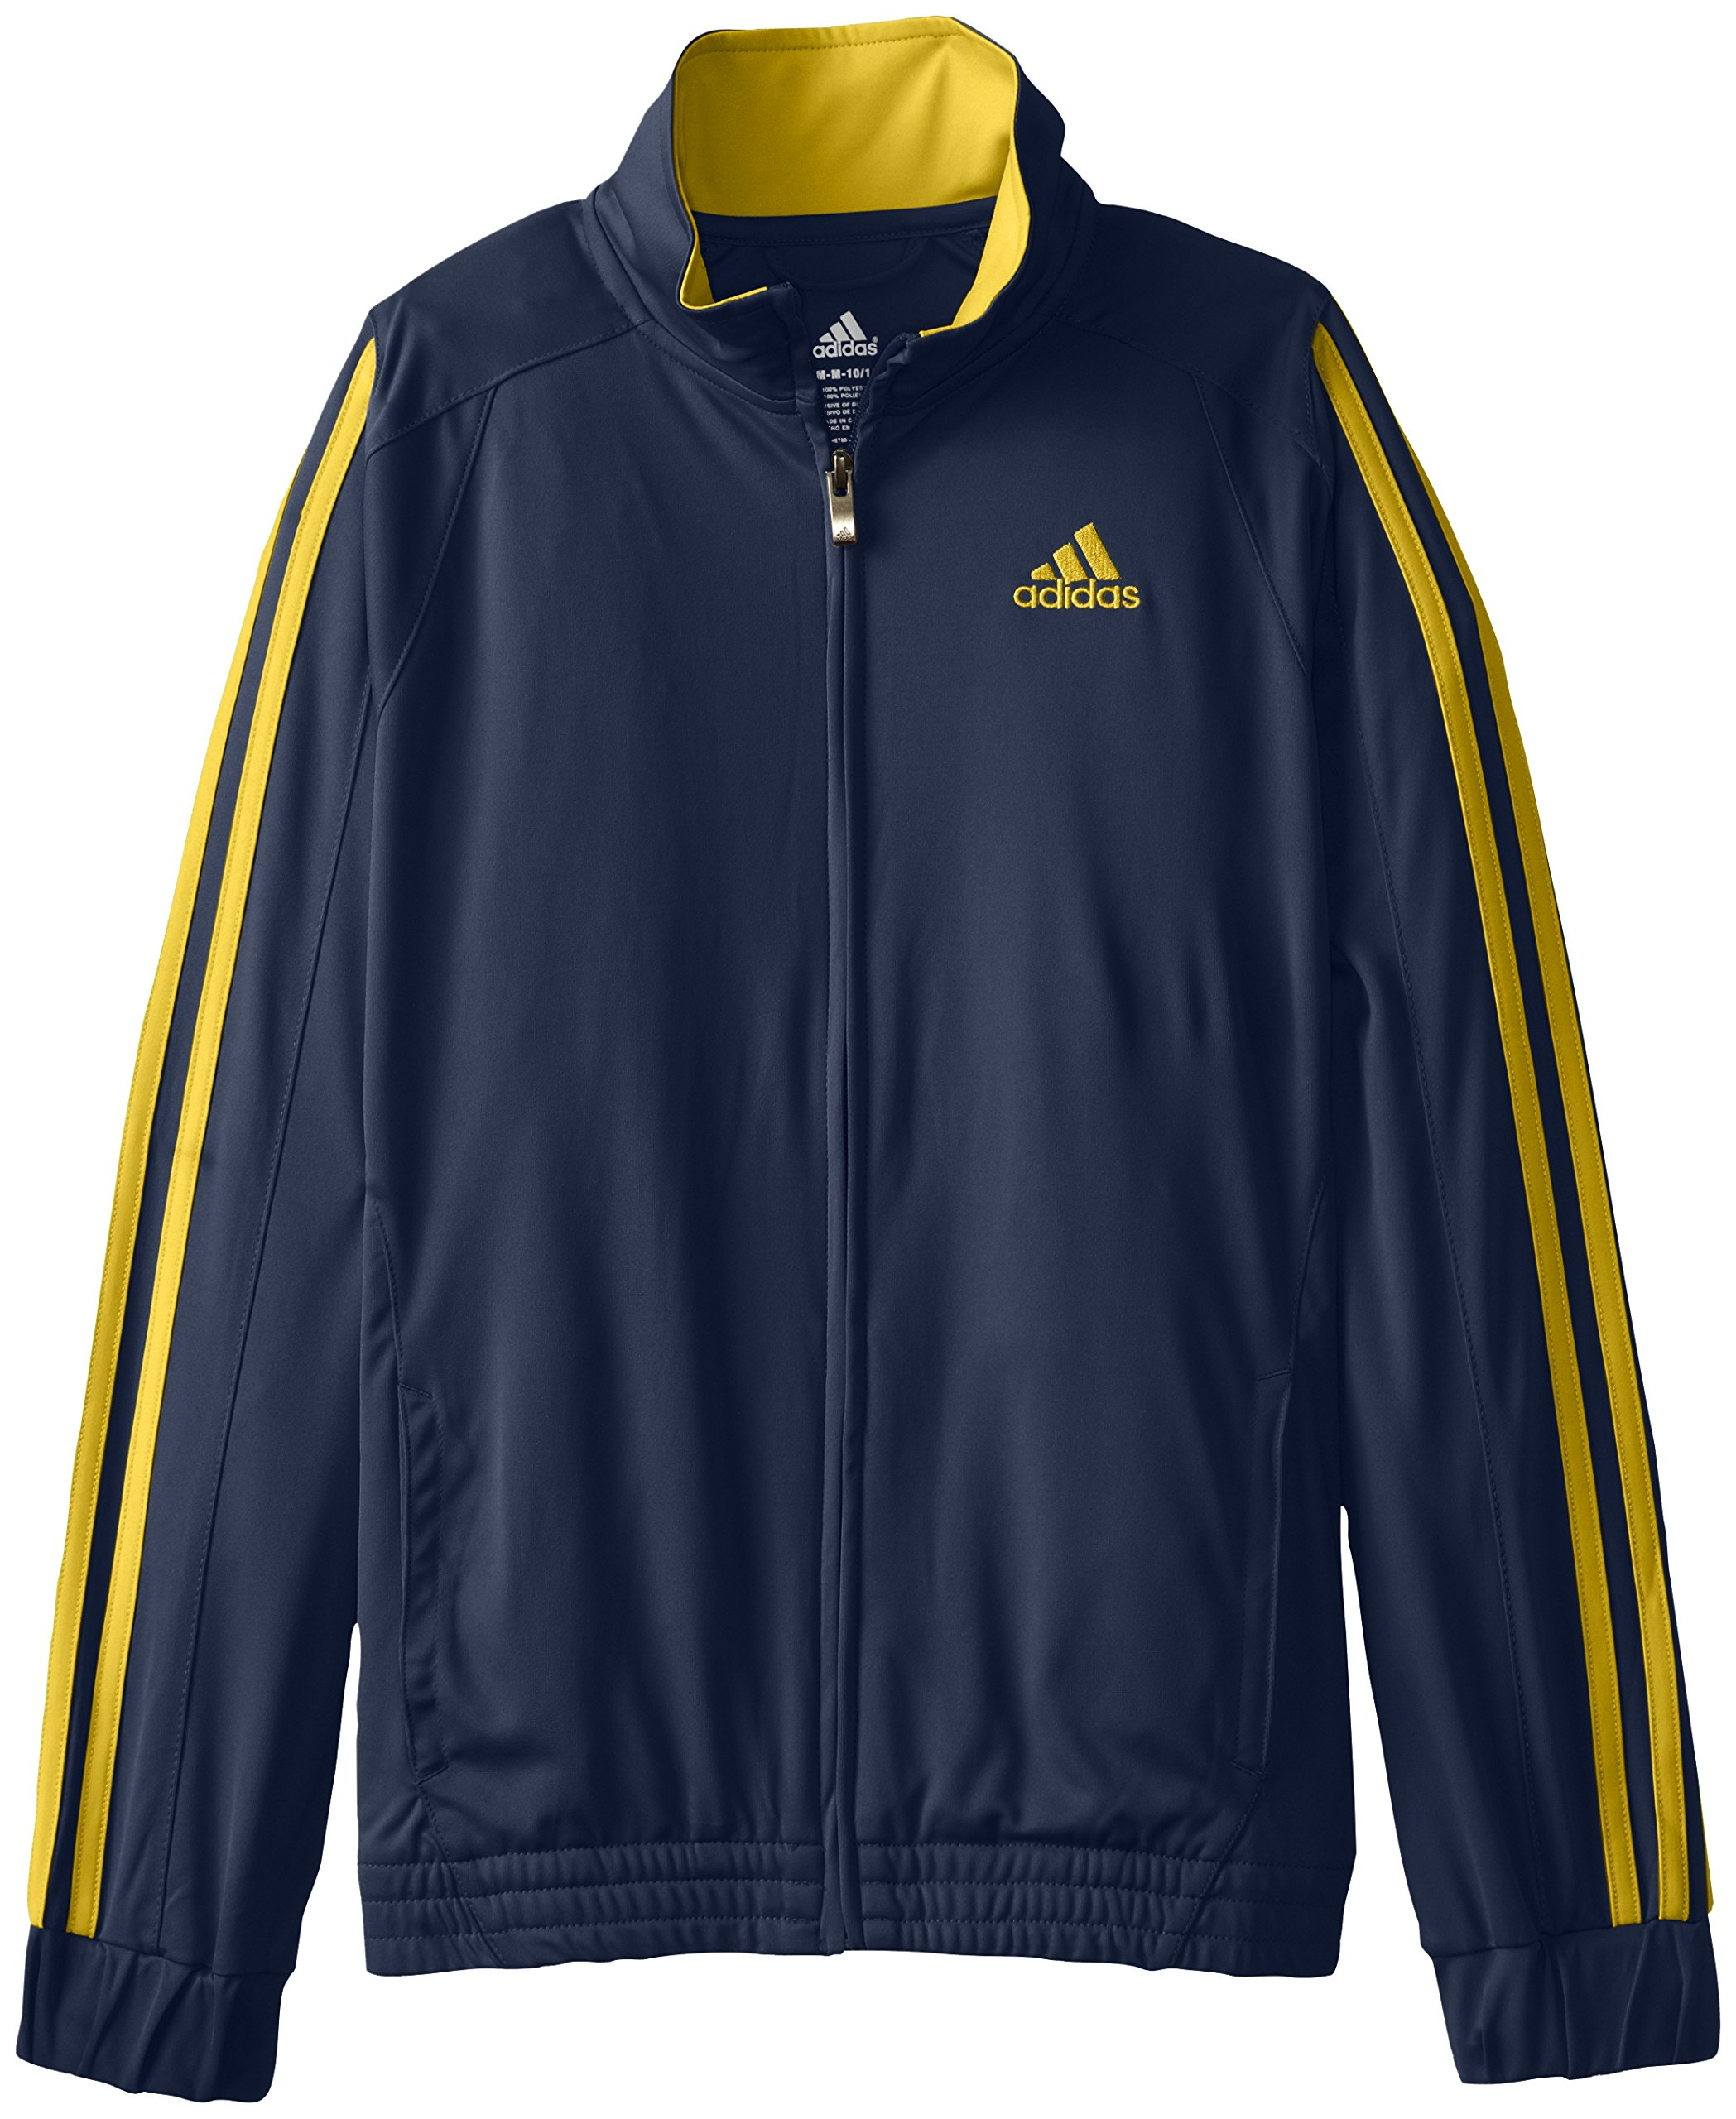 adidas Boys' Big Loose Core F Z Jacket, Navy/Yellow, Large by adidas